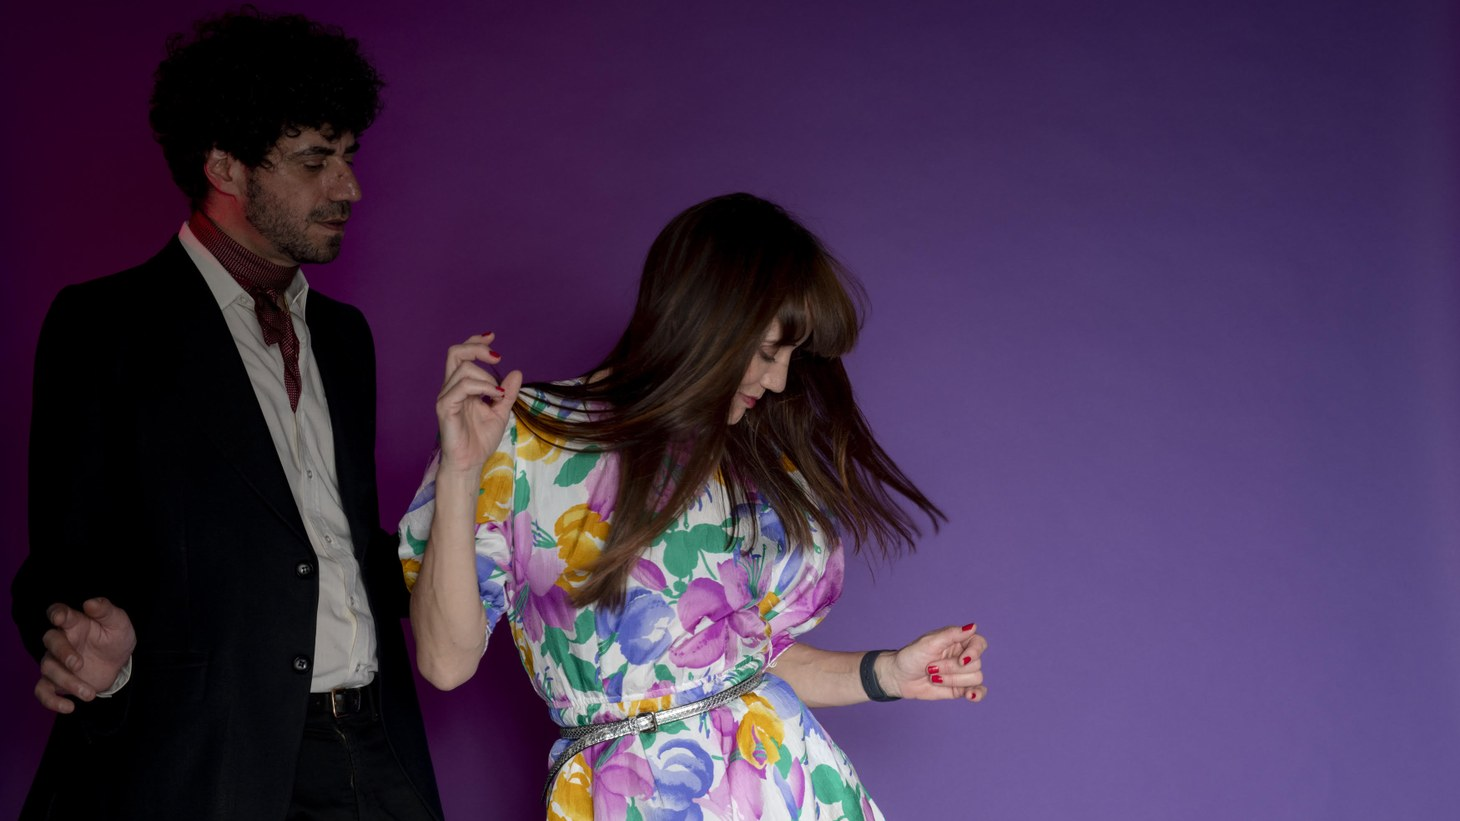 """Argentine artist Cineplexx has a throwback sound recalling the romanticism of Latin music of the 70's. On """"Hey,"""" he collaborates with Spanish singer La Bien Querida, to tell the story of a couple in love separated by distance."""